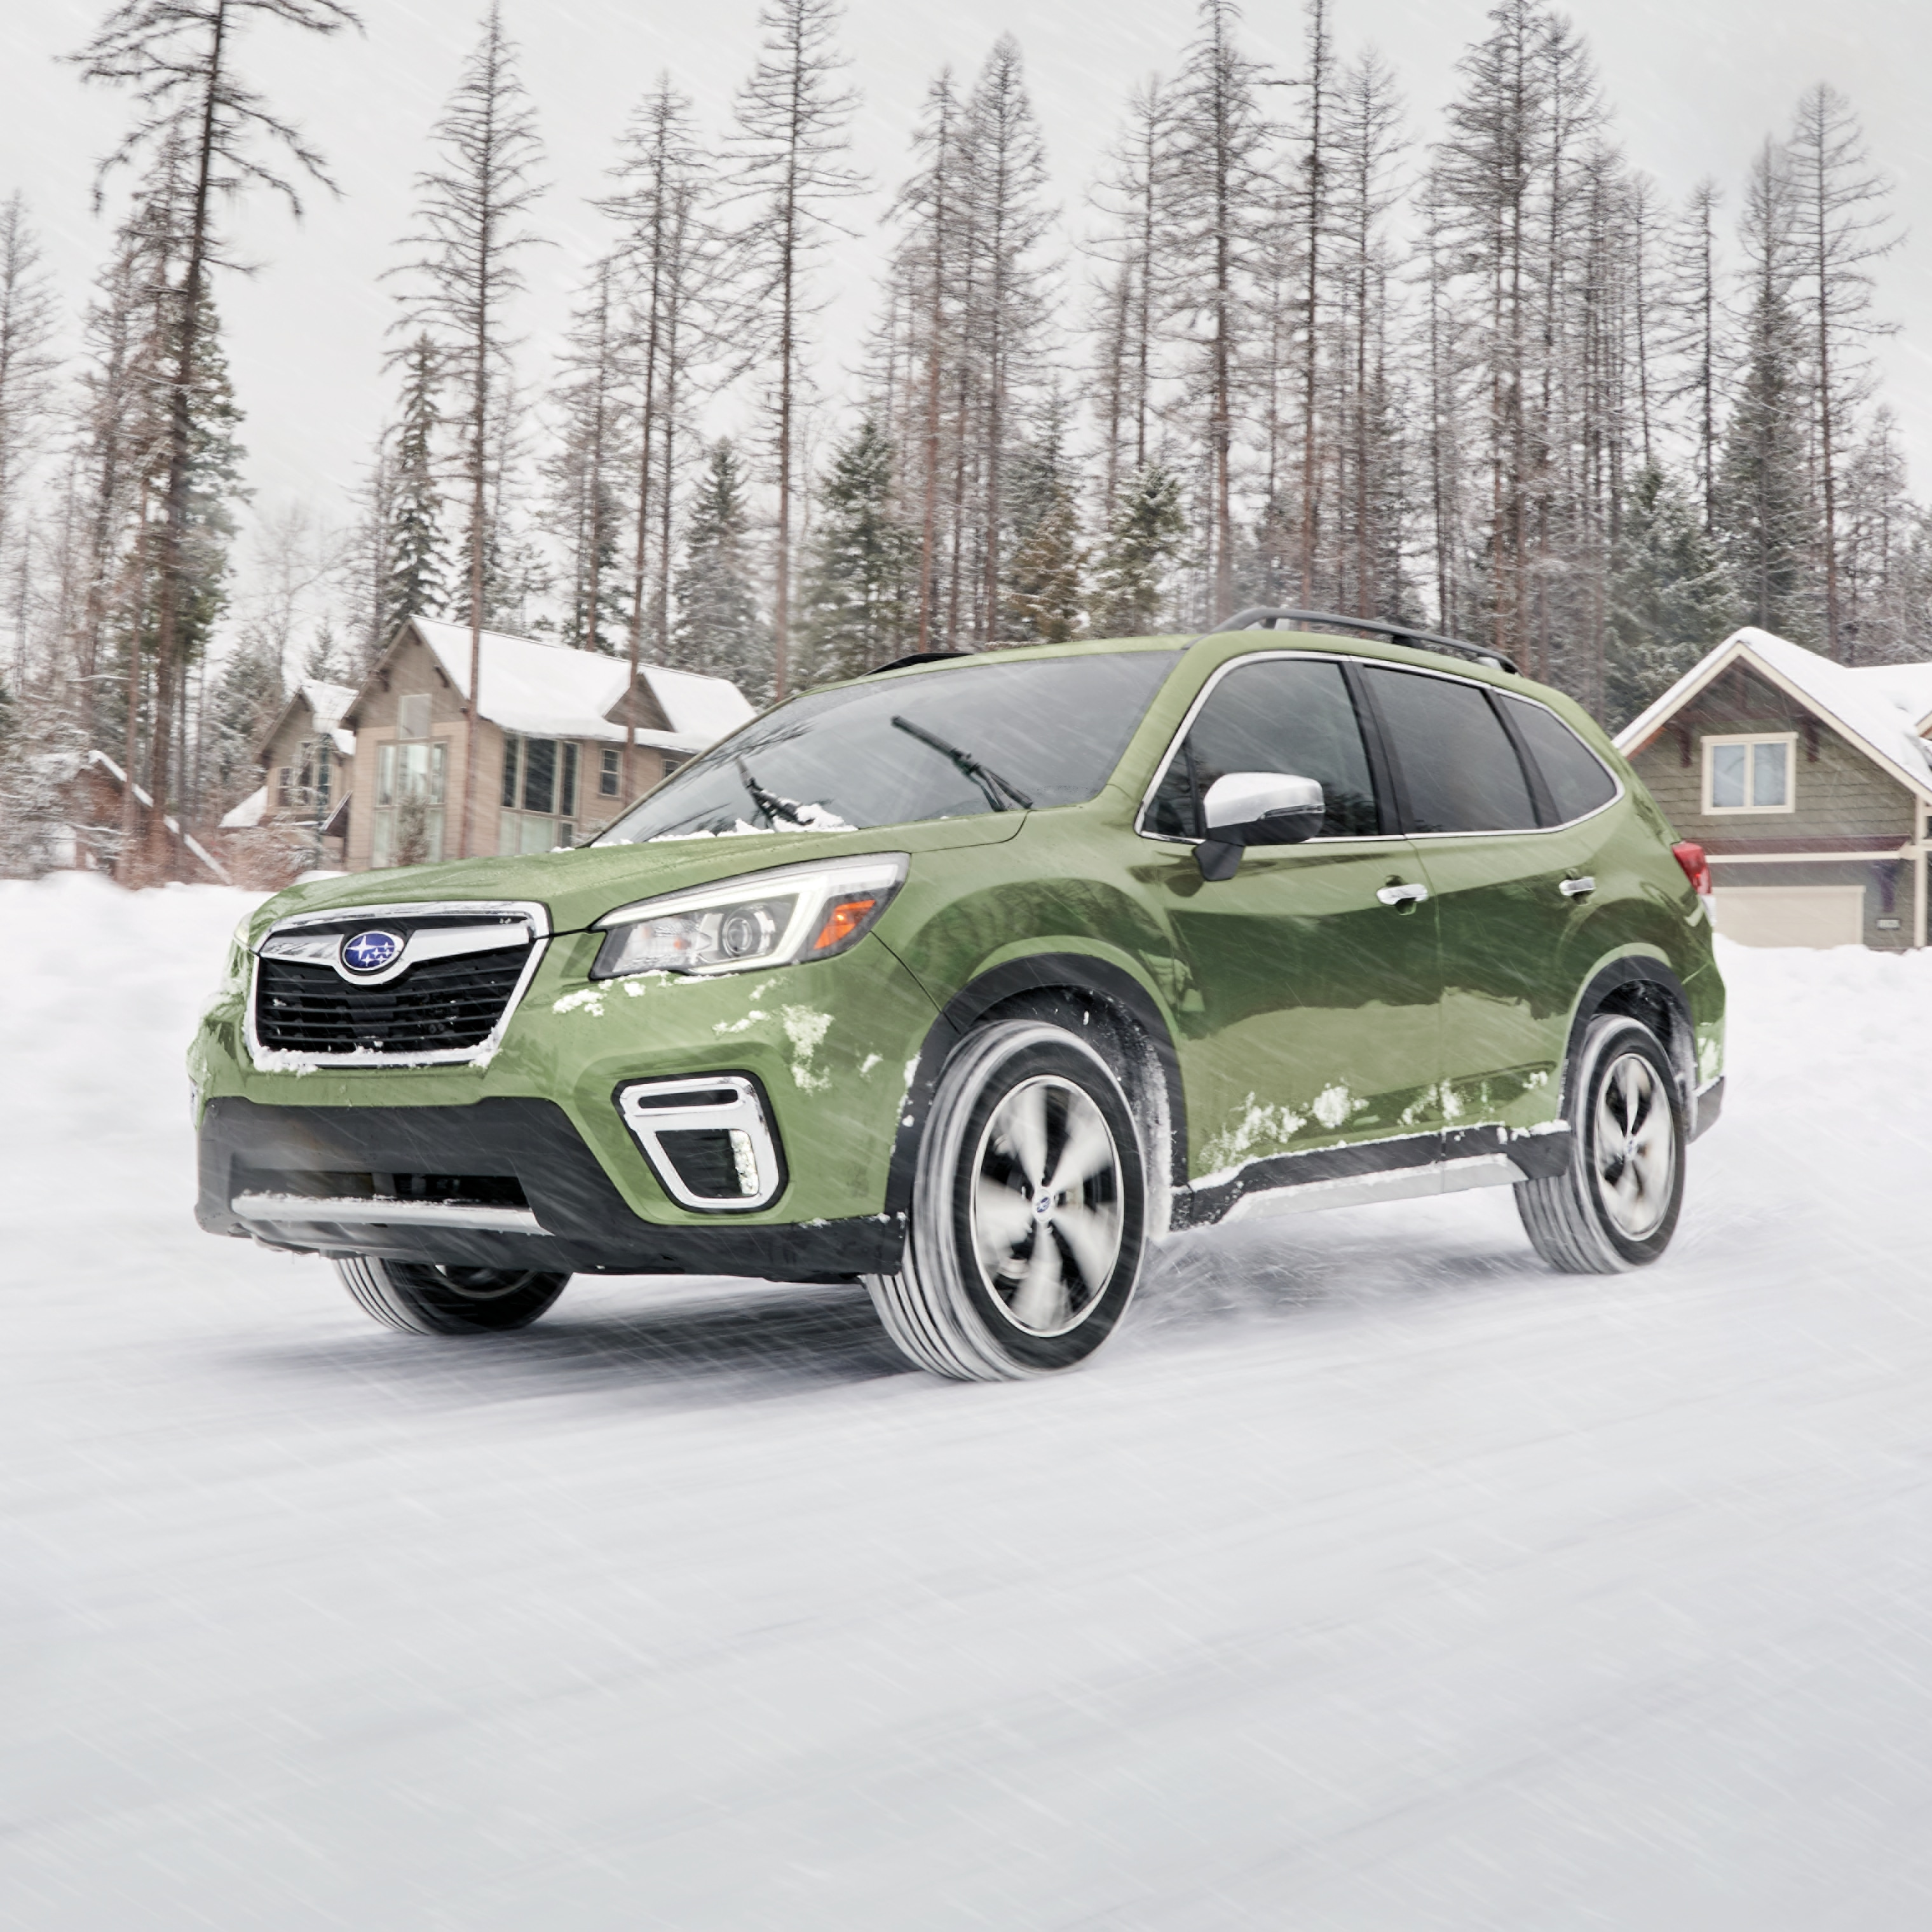 2019 Subaru Forester Performance